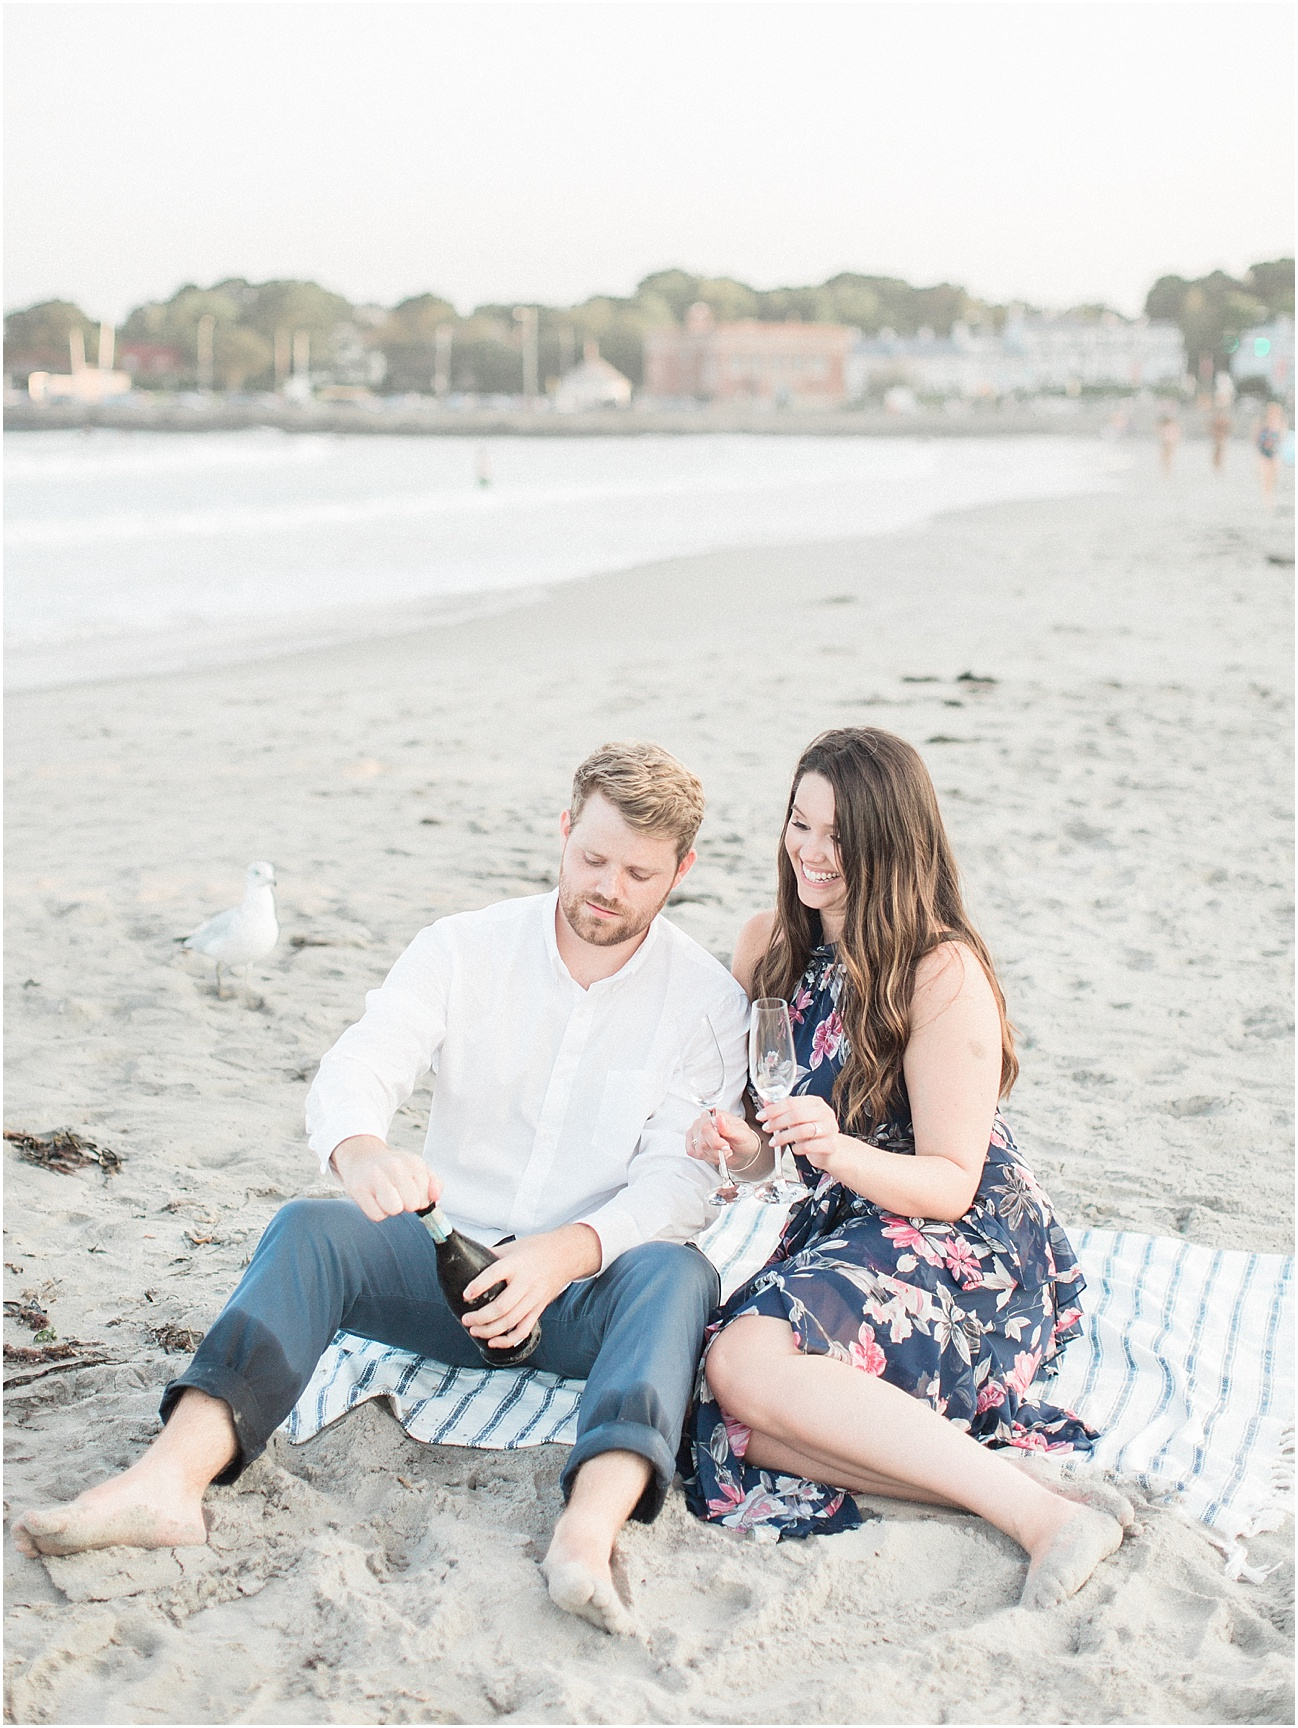 heather_chris_narragansett_beer_cliff_walk_beach_rhode_island_ri_cape_cod_boston_wedding_photographer_meredith_jane_photography_photo_0745.jpg